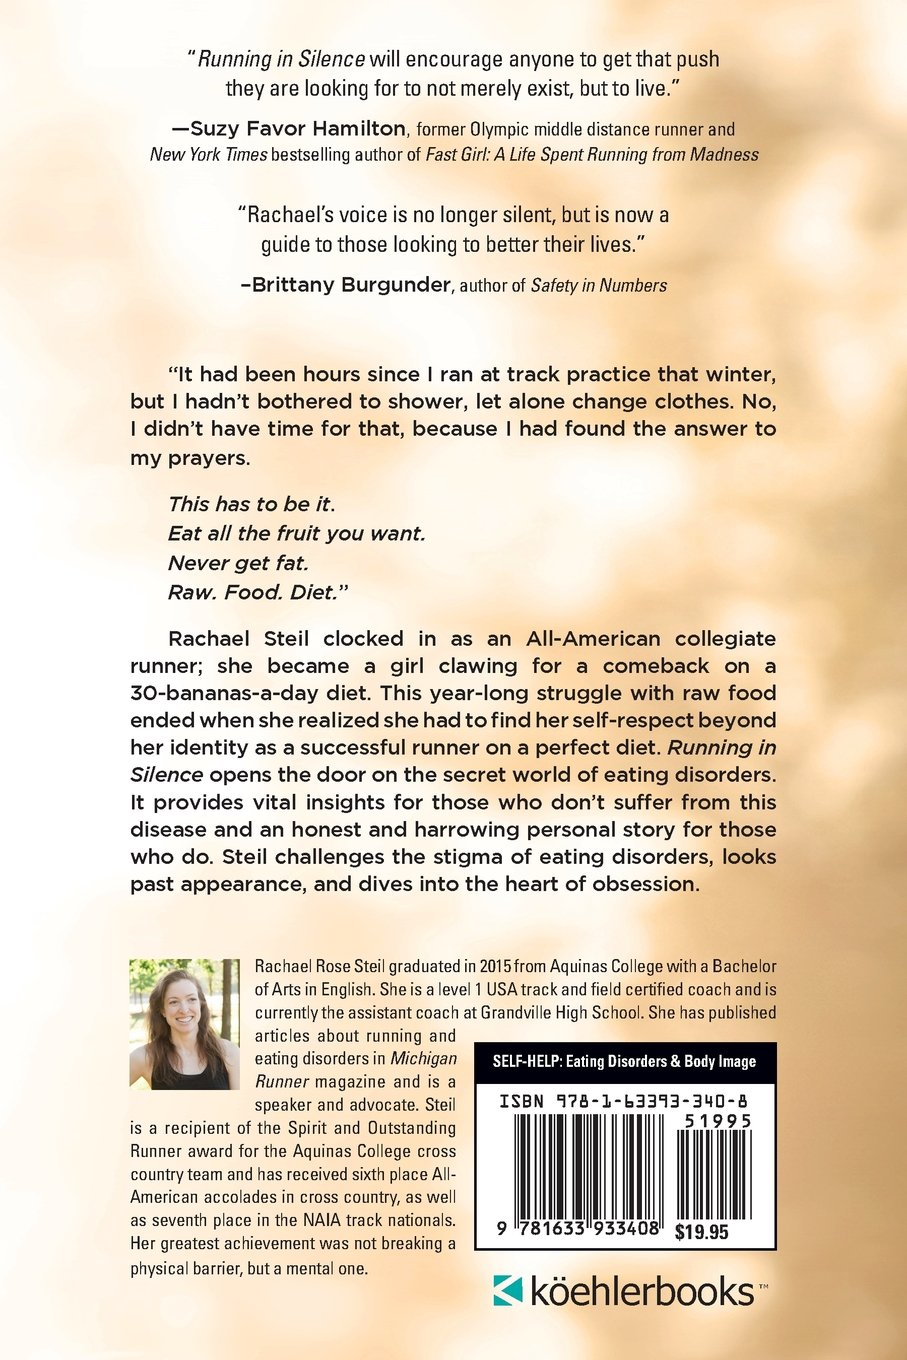 Running in Silence: My Drive for Perfection and the Eating Disorder That  Fed It: Rachael Rose Steil: 9781633933408: Amazon.com: Books